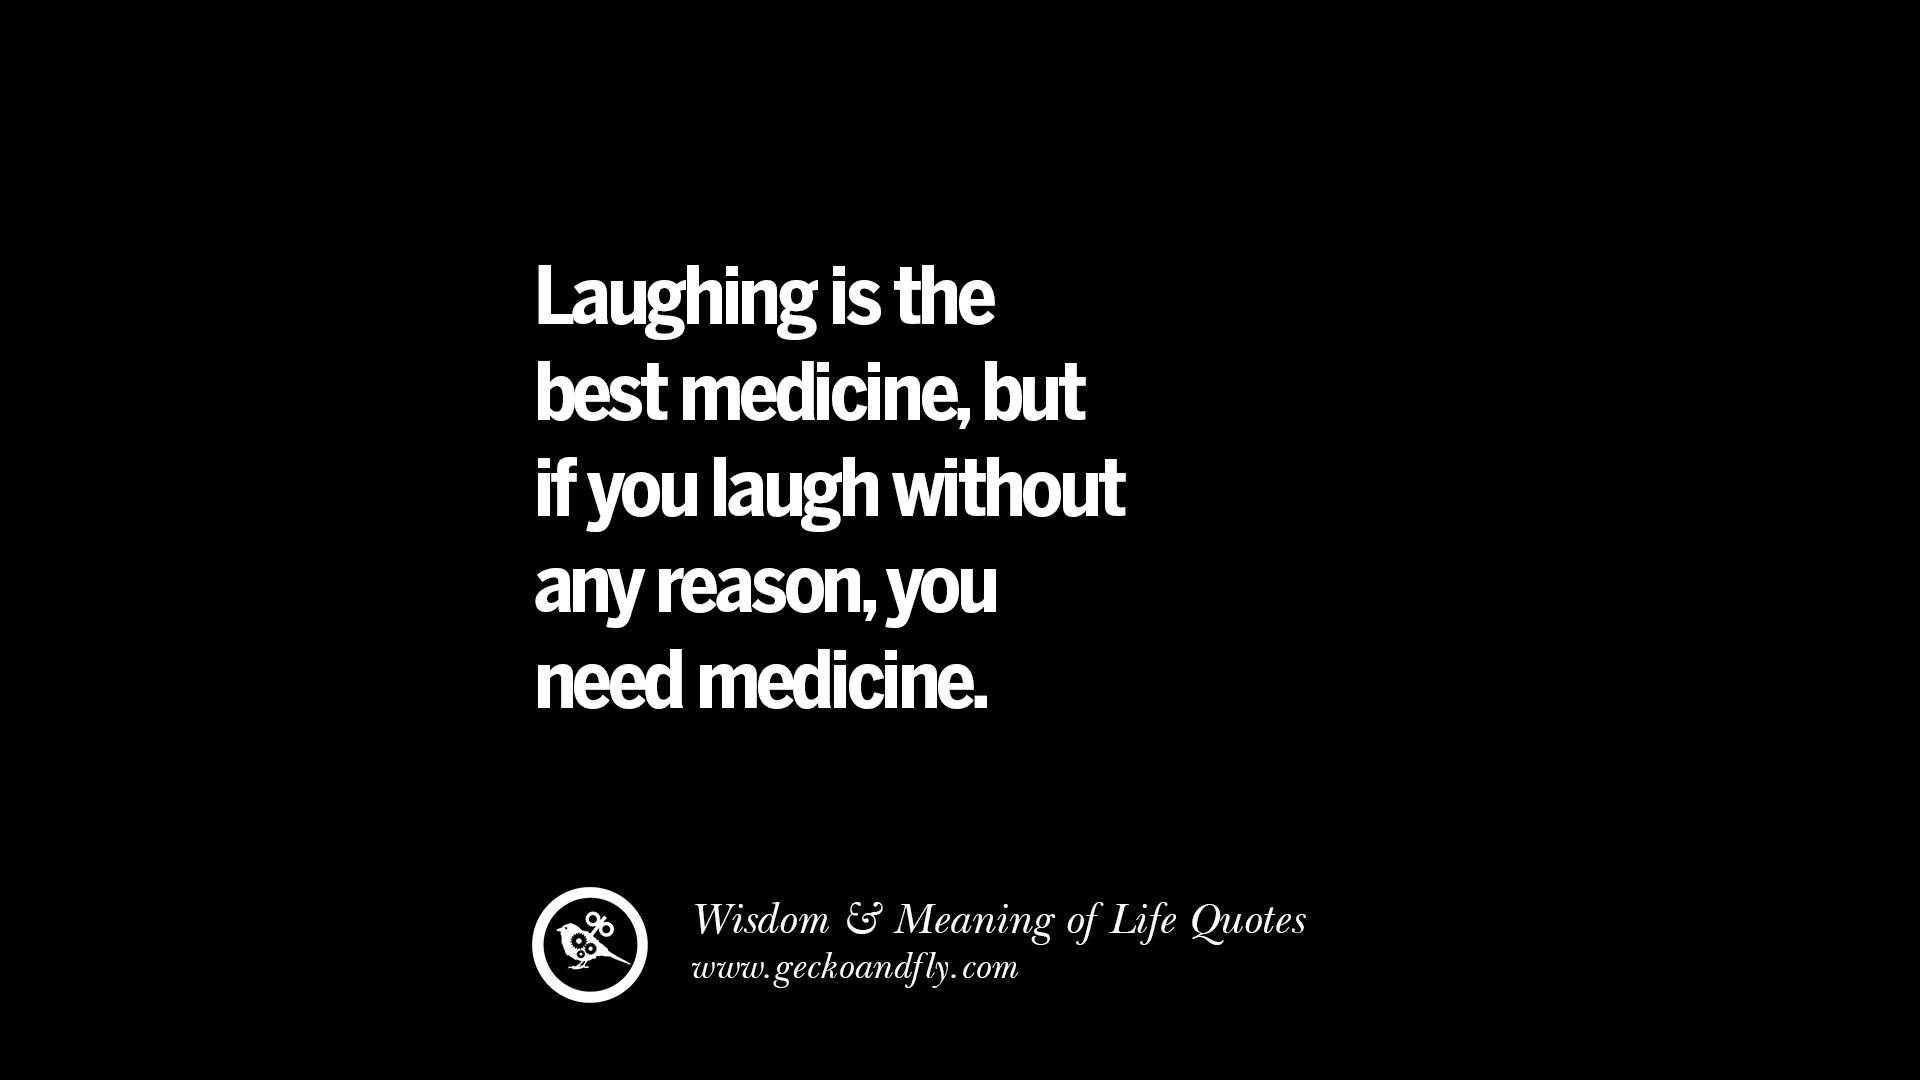 Funny Life Quotes With Images 24 Funny Eye Opening Quotes About Wisdom Truth And Meaning Of